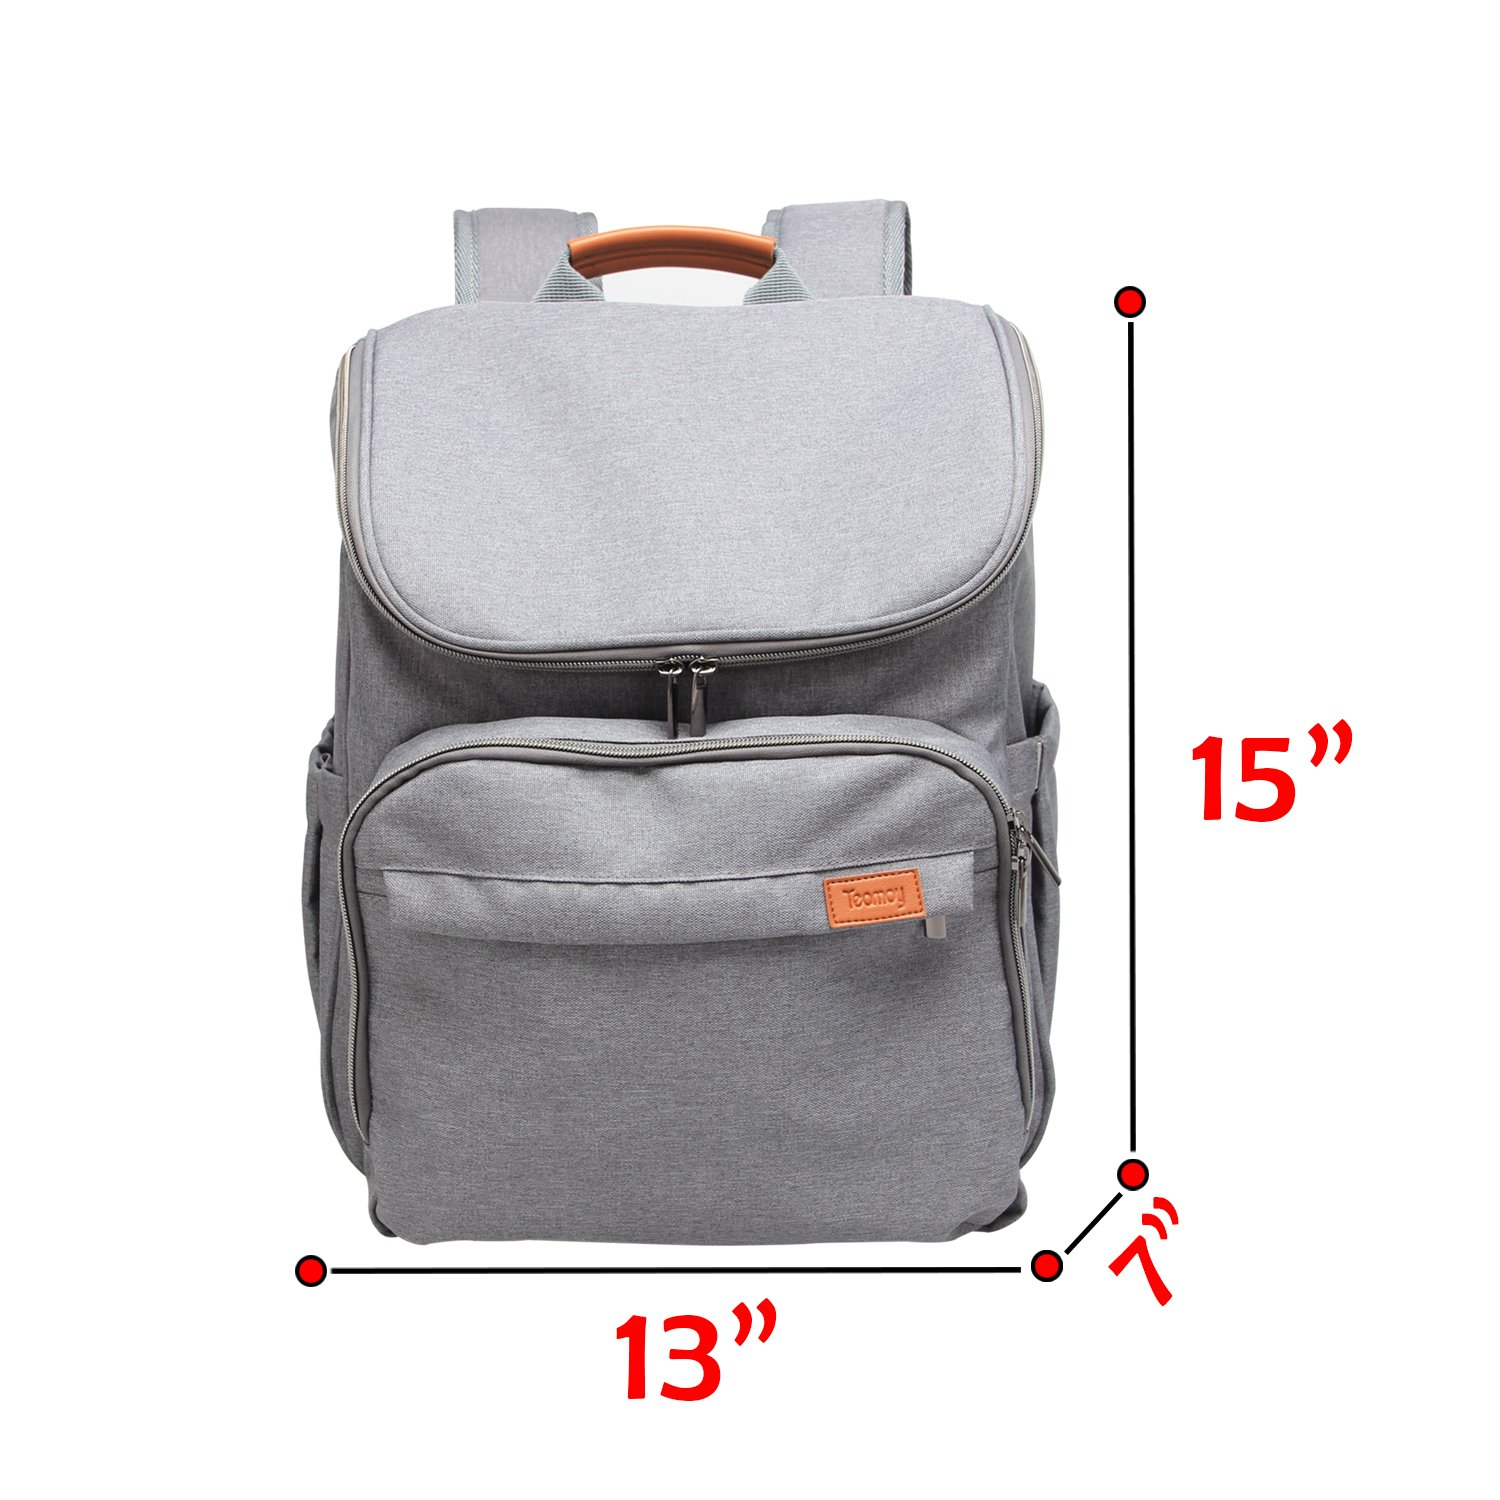 Teamoy Diaper Bag Backpack, Travel Weekender Carry Bag with Stroller Straps, Changing Pad, Insulated...